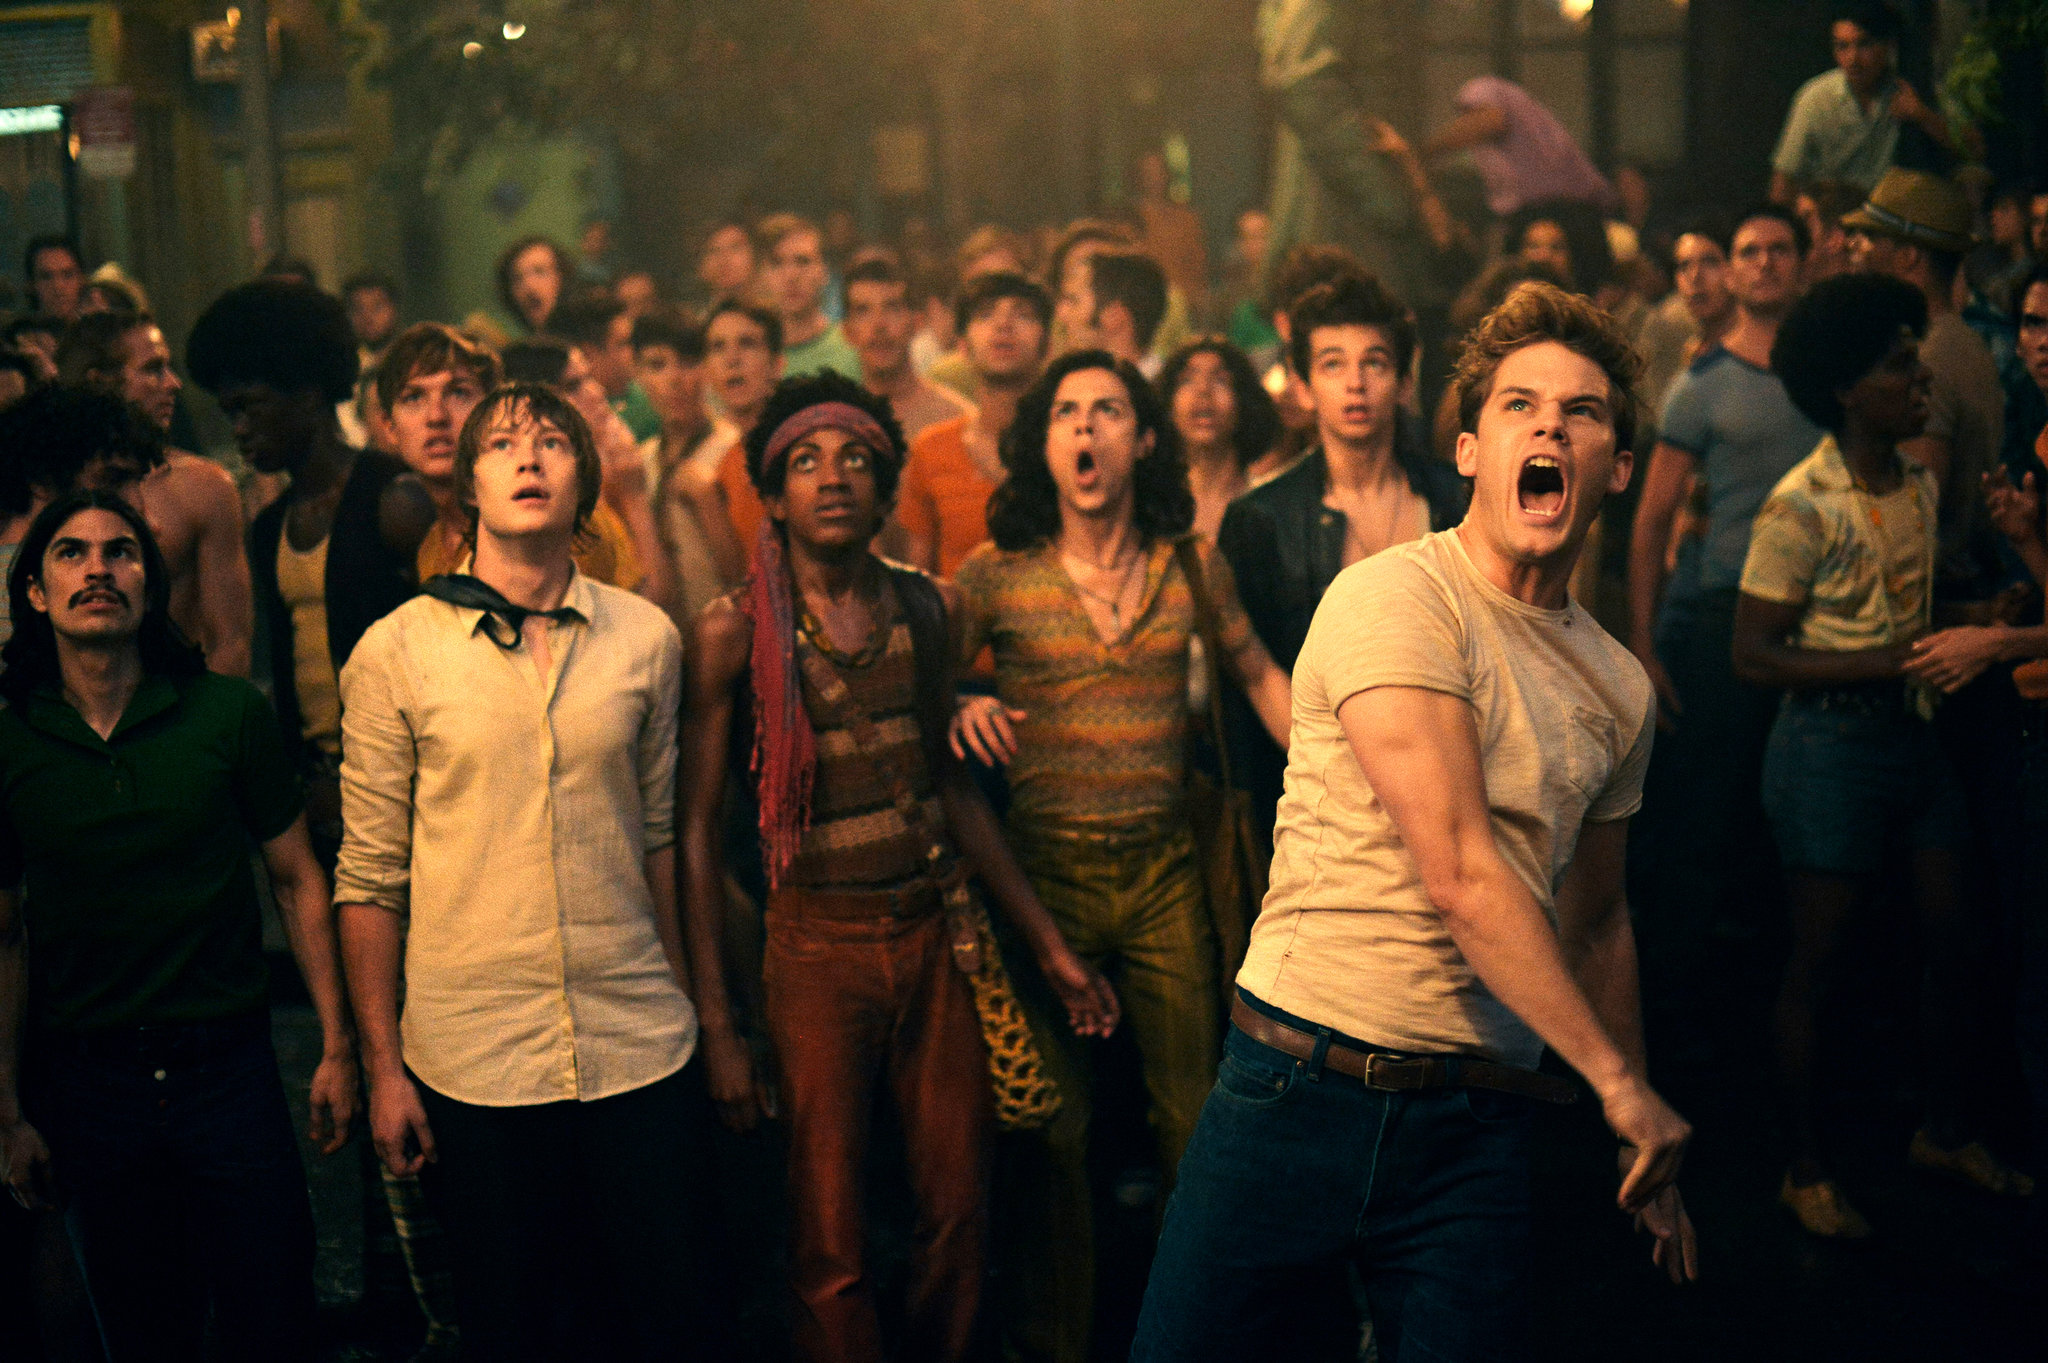 20stonewall1 superJumbo Films 'Based On A True Story' That Completely Lied To Us